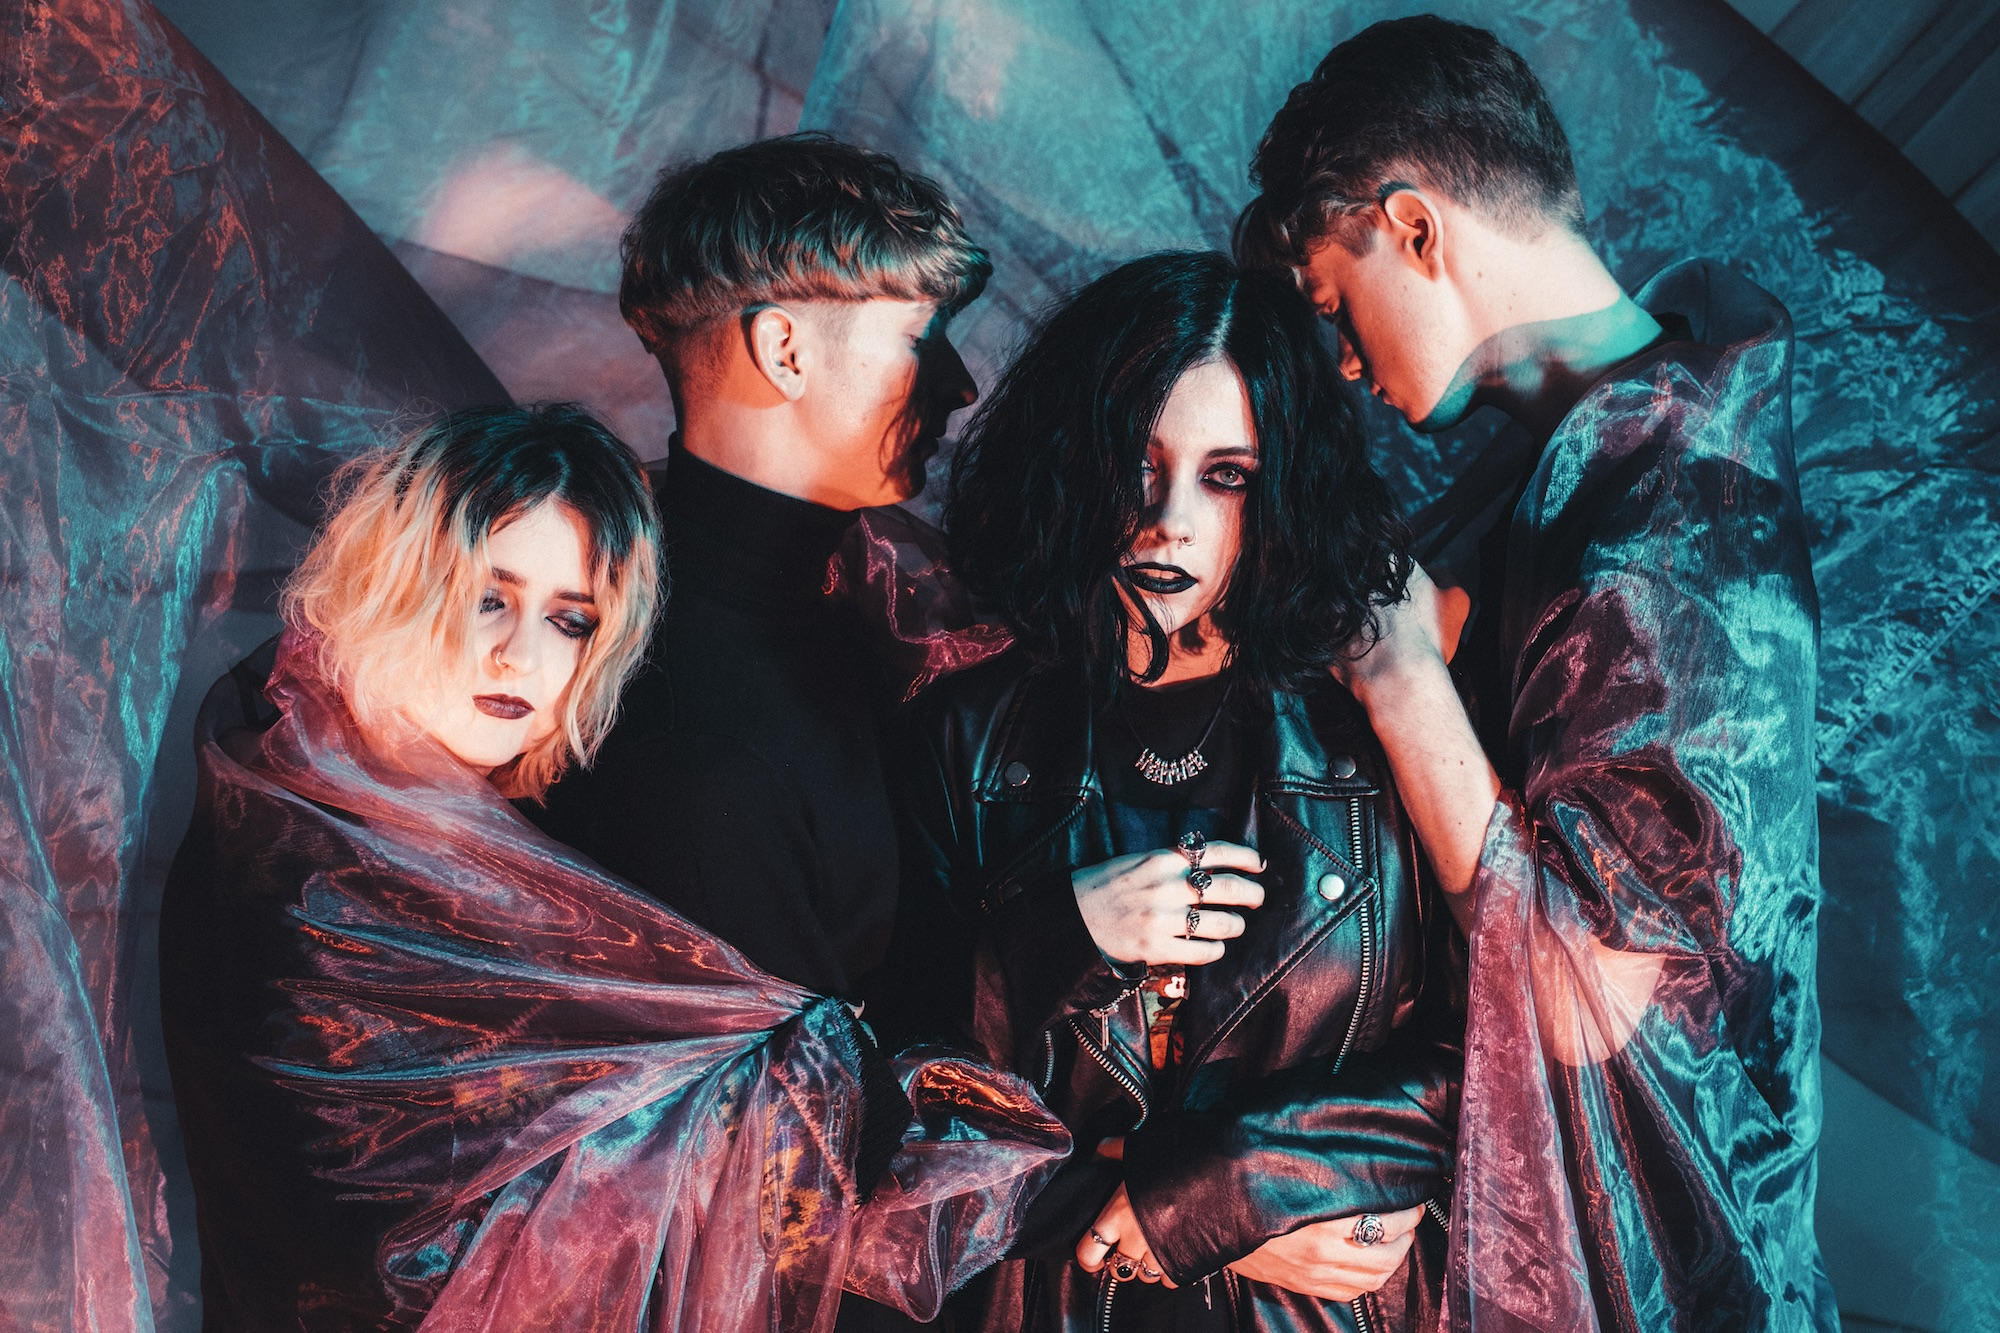 Pale Waves release 'Television Romance' video - Love Music